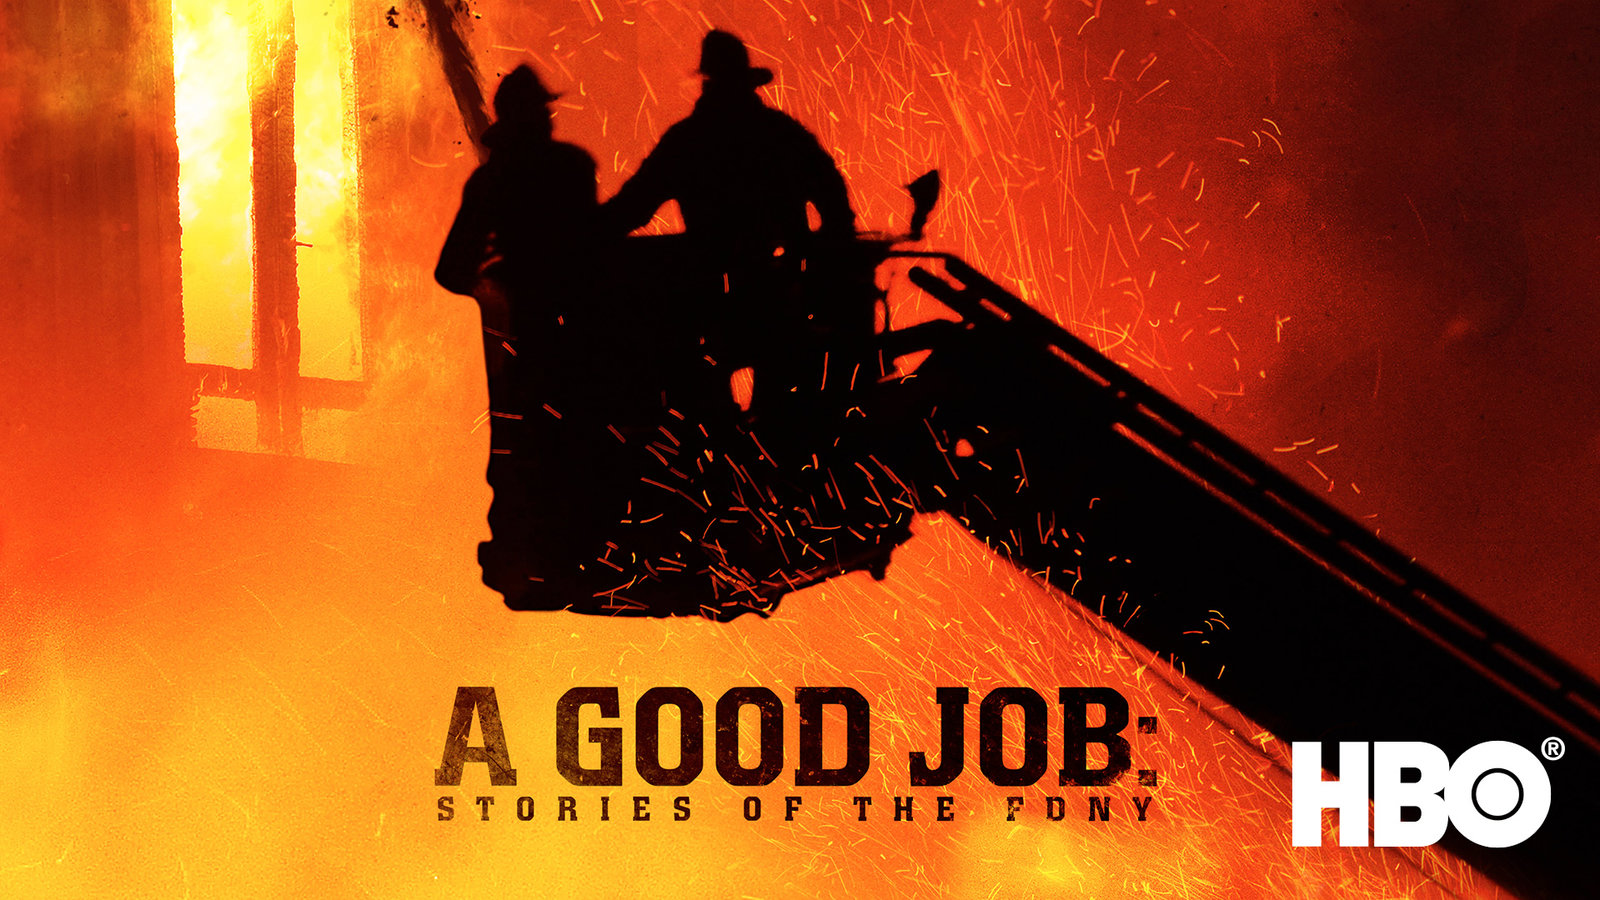 A Good Job - Stories of the FDNY